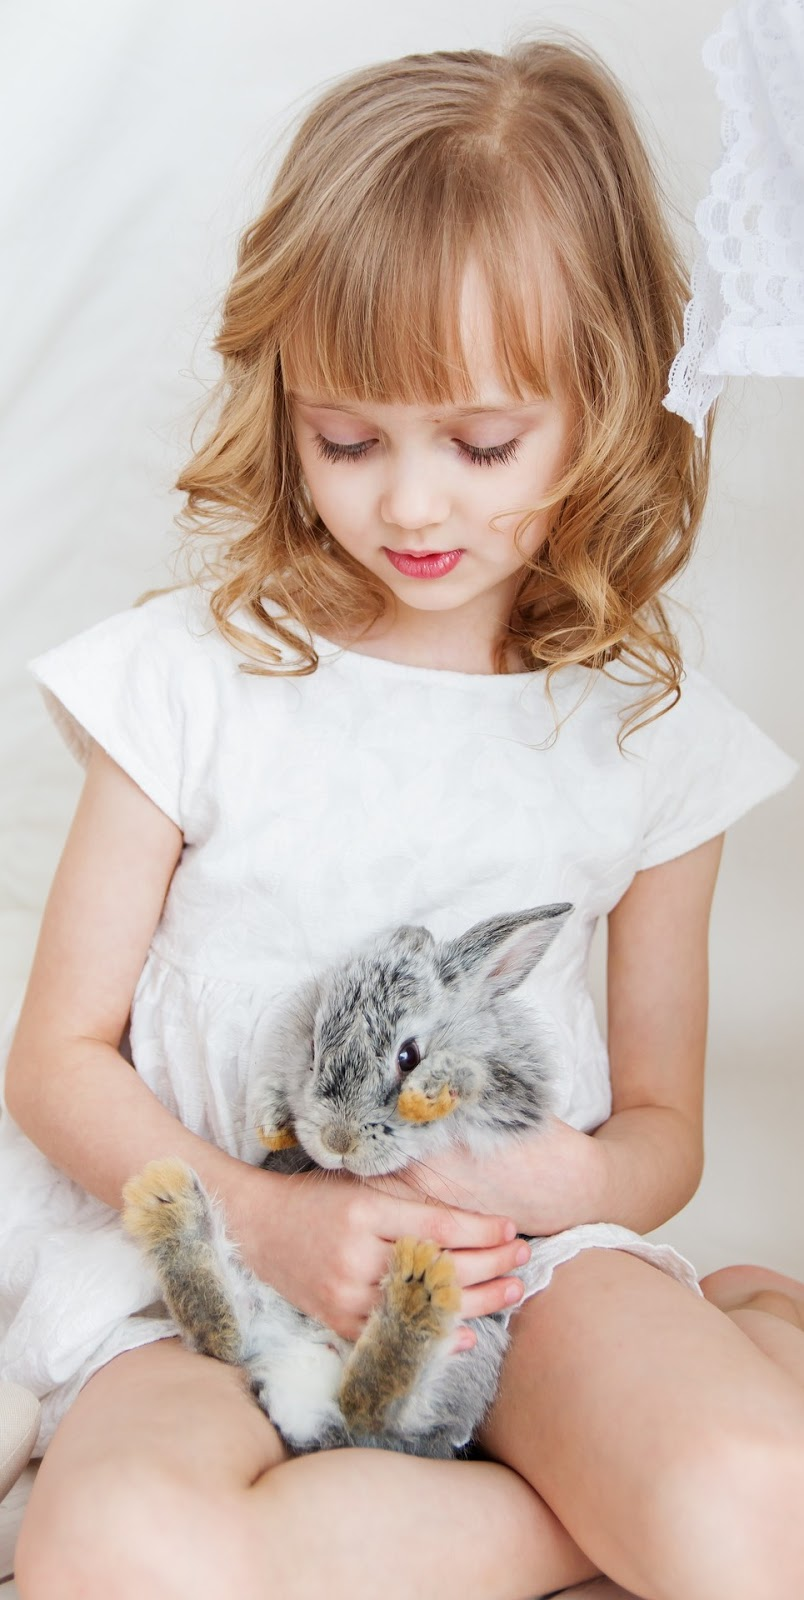 A young girl holding a cute rabbit.